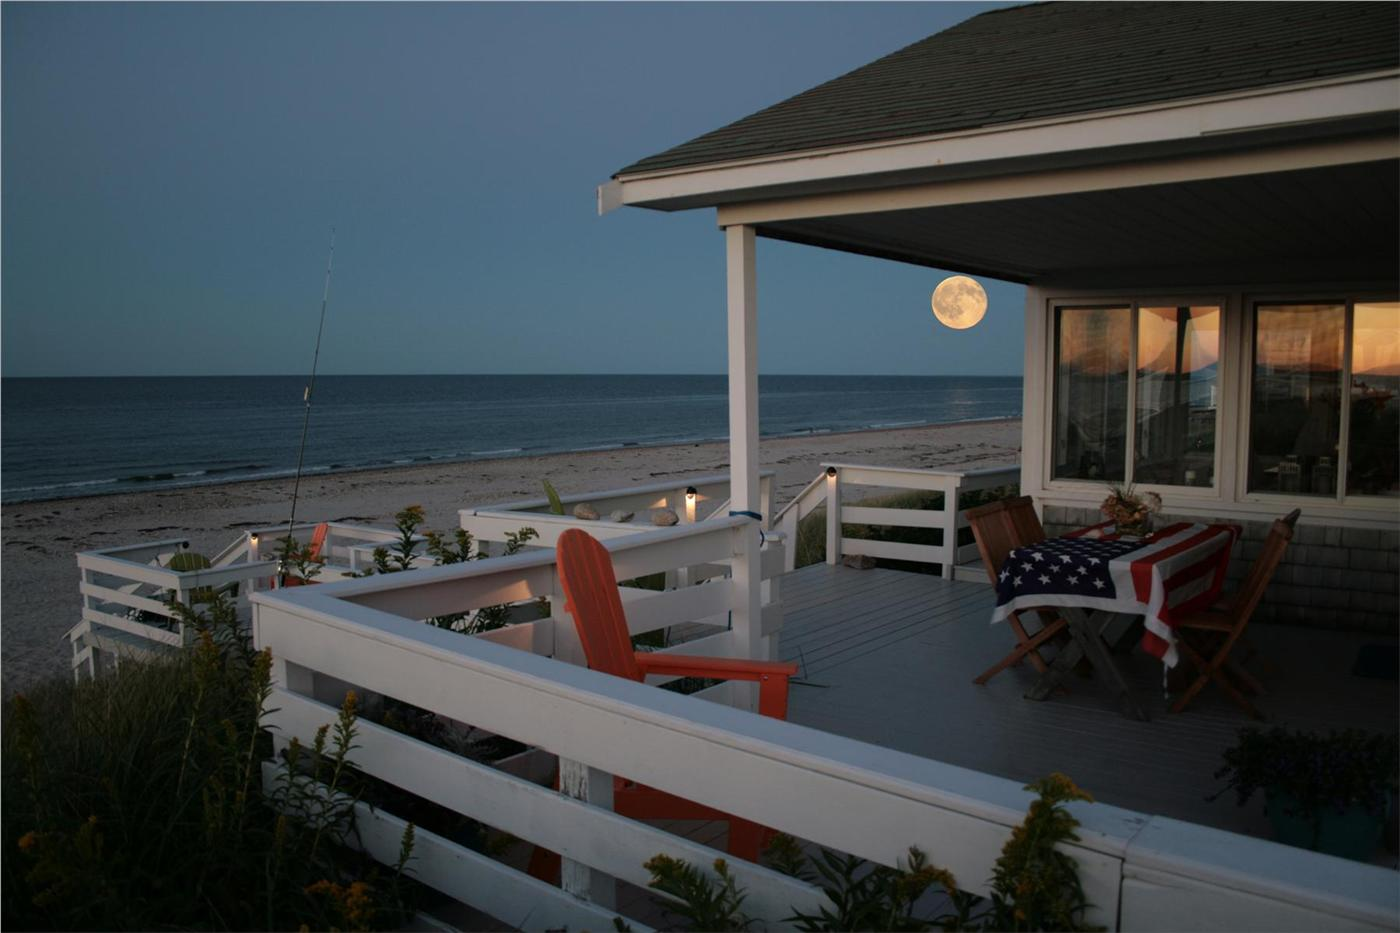 Sandwich Vacation Rental Home In Cape Cod Ma 02537 1 Step